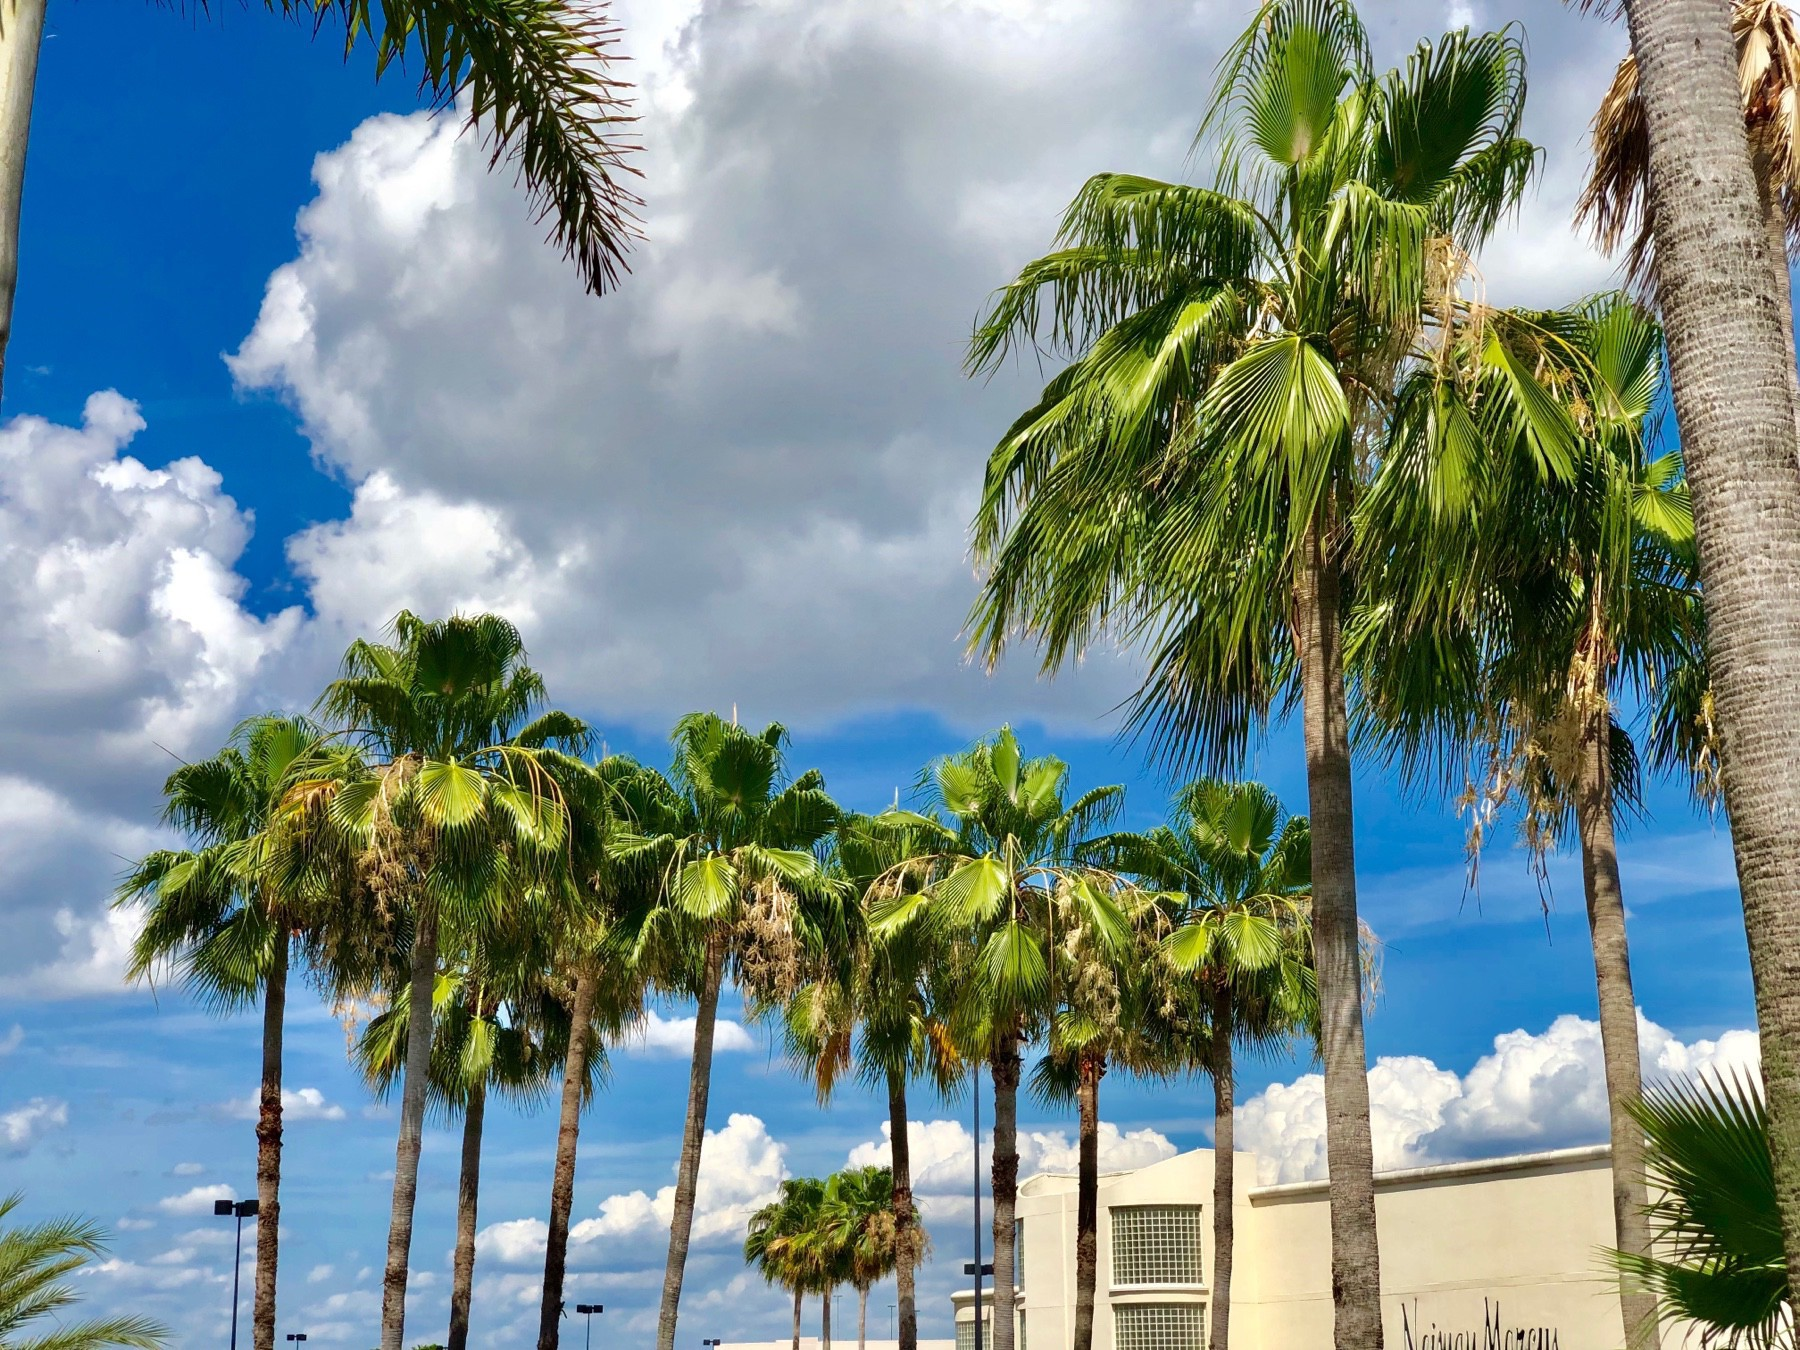 A group of palm trees set against a brilliant blue sky dotted with puffy white clouds. There's a building in the background as well.